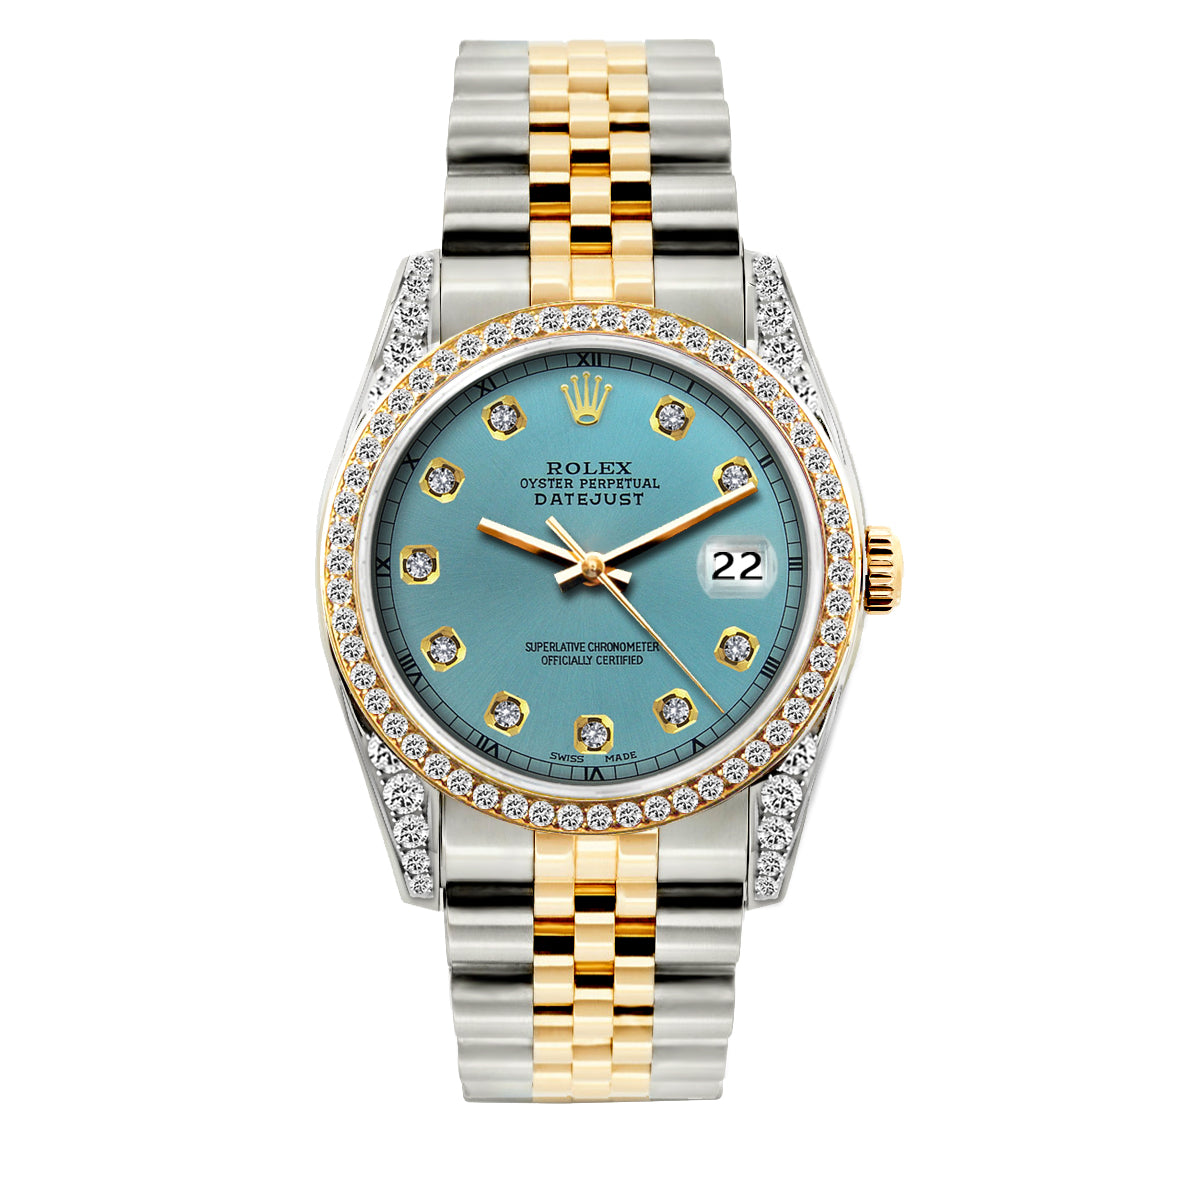 Rolex Datejust 36mm Yellow Gold and Stainless Steel Bracelet Ice Blue Dial w/ Diamond Bezel and Lugs